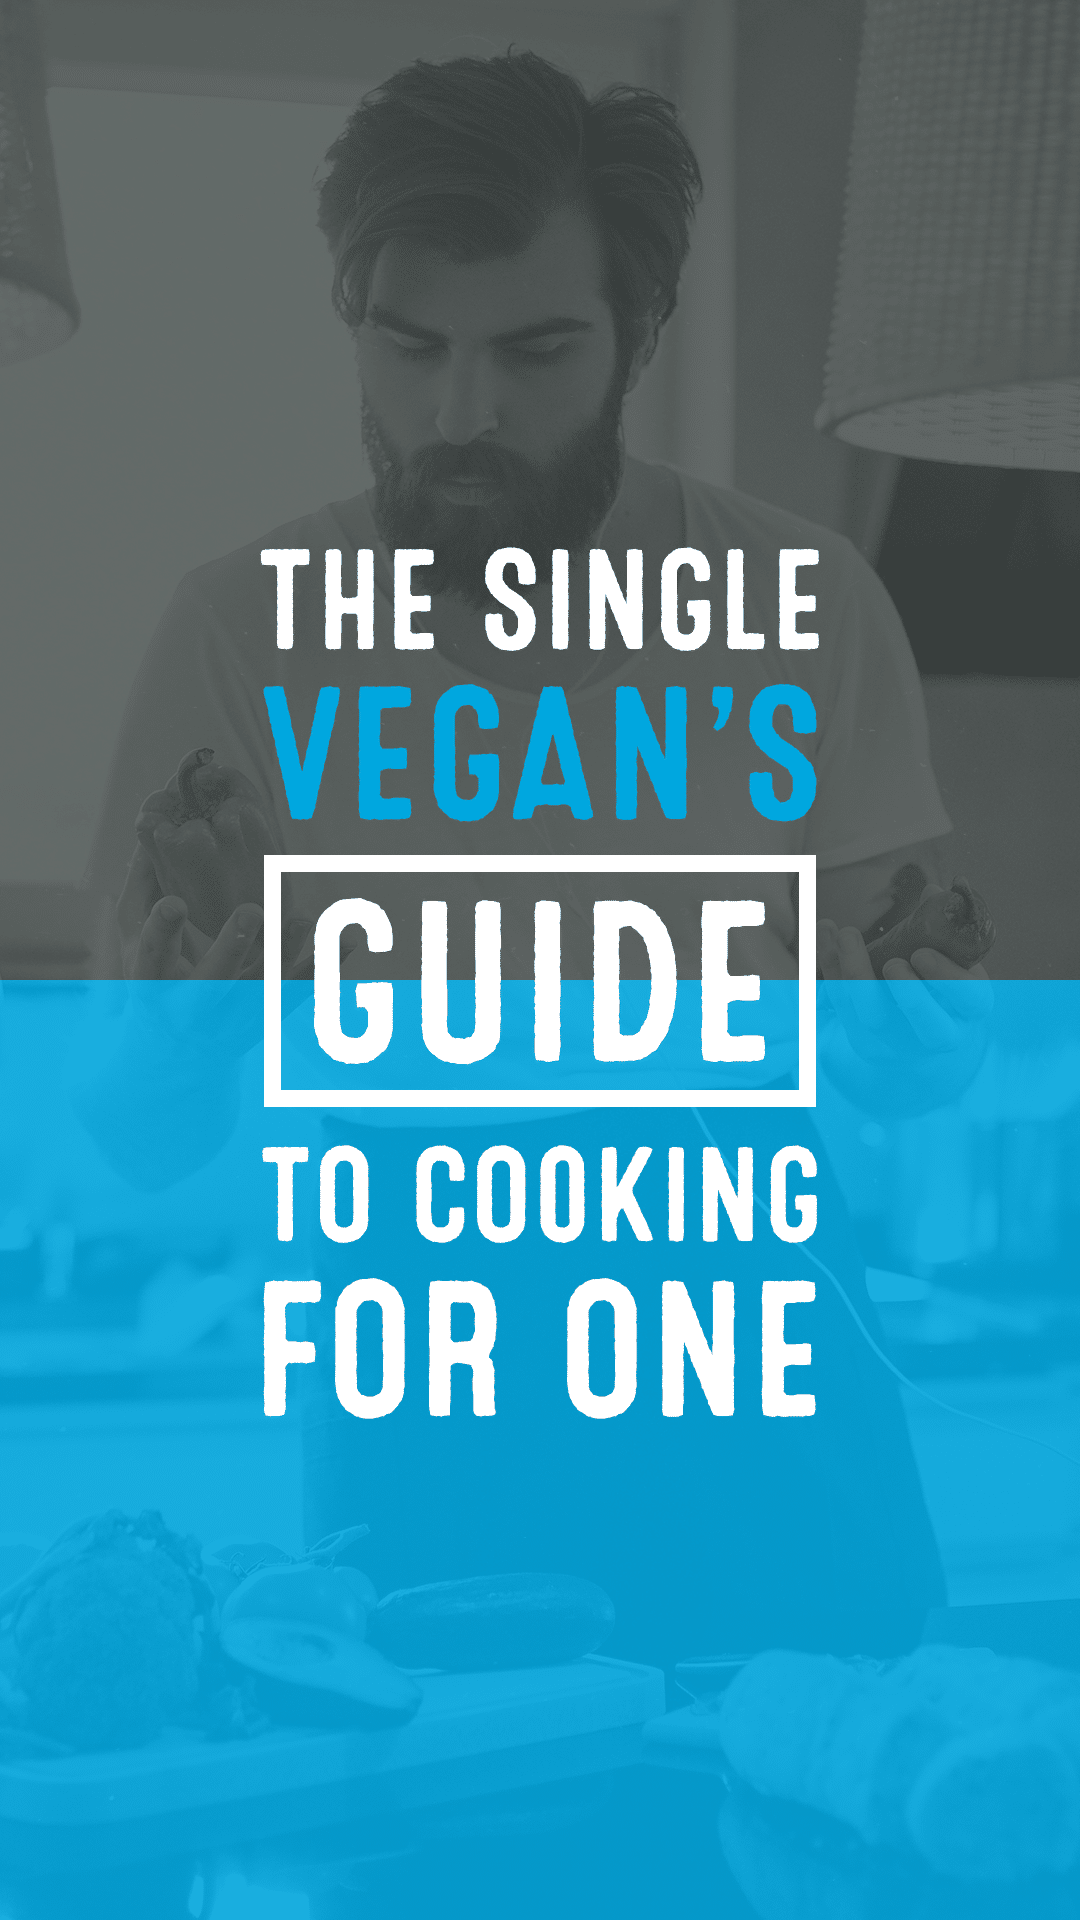 The Single Vegan's Guide to Cooking for One